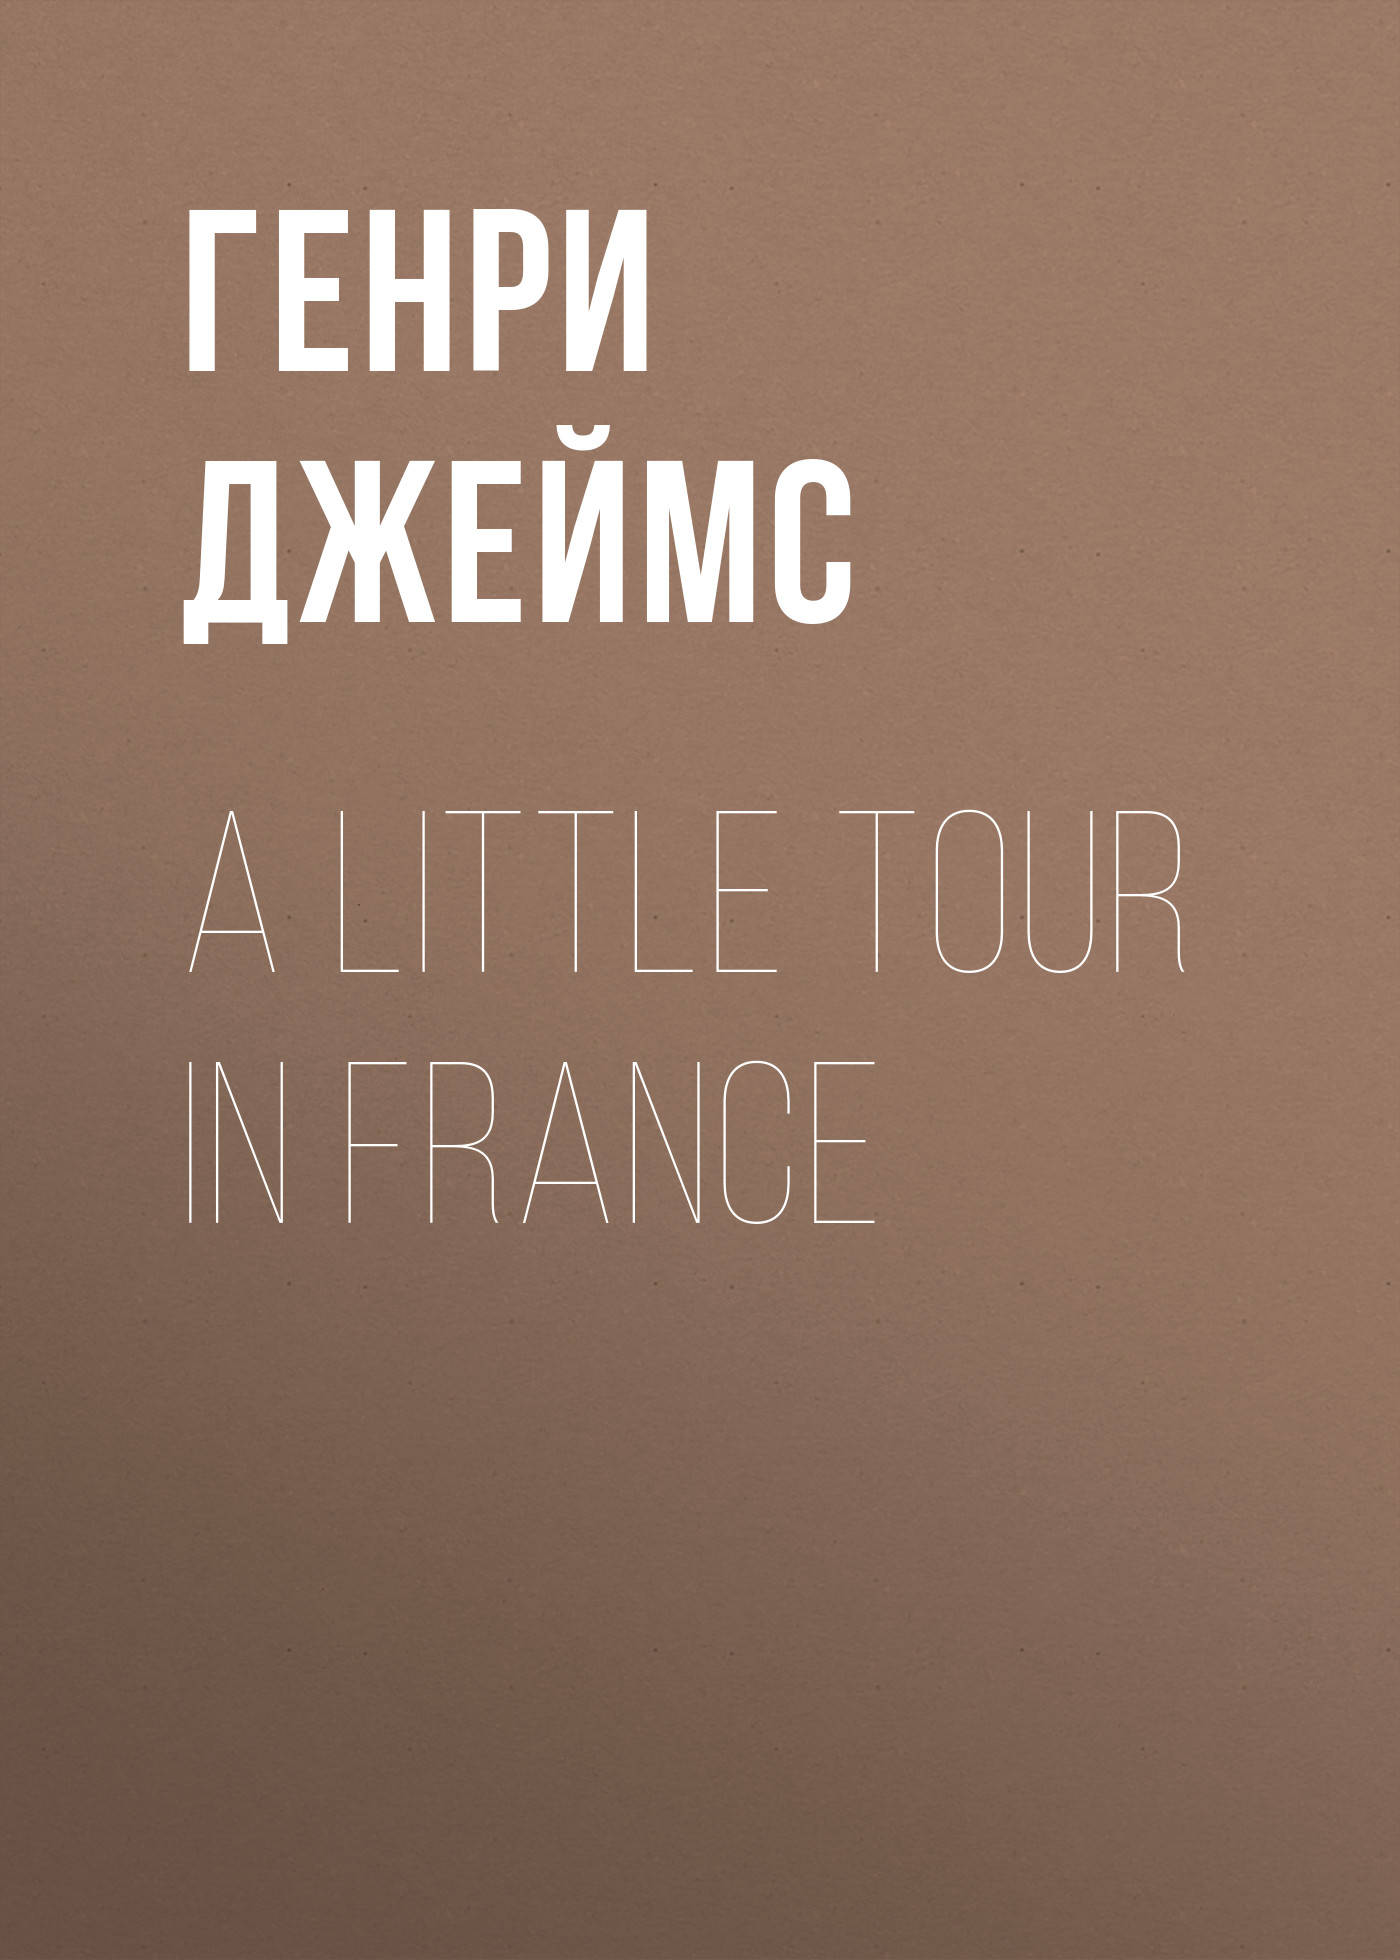 Генри Джеймс A Little Tour in France лопата 70 см в асс те